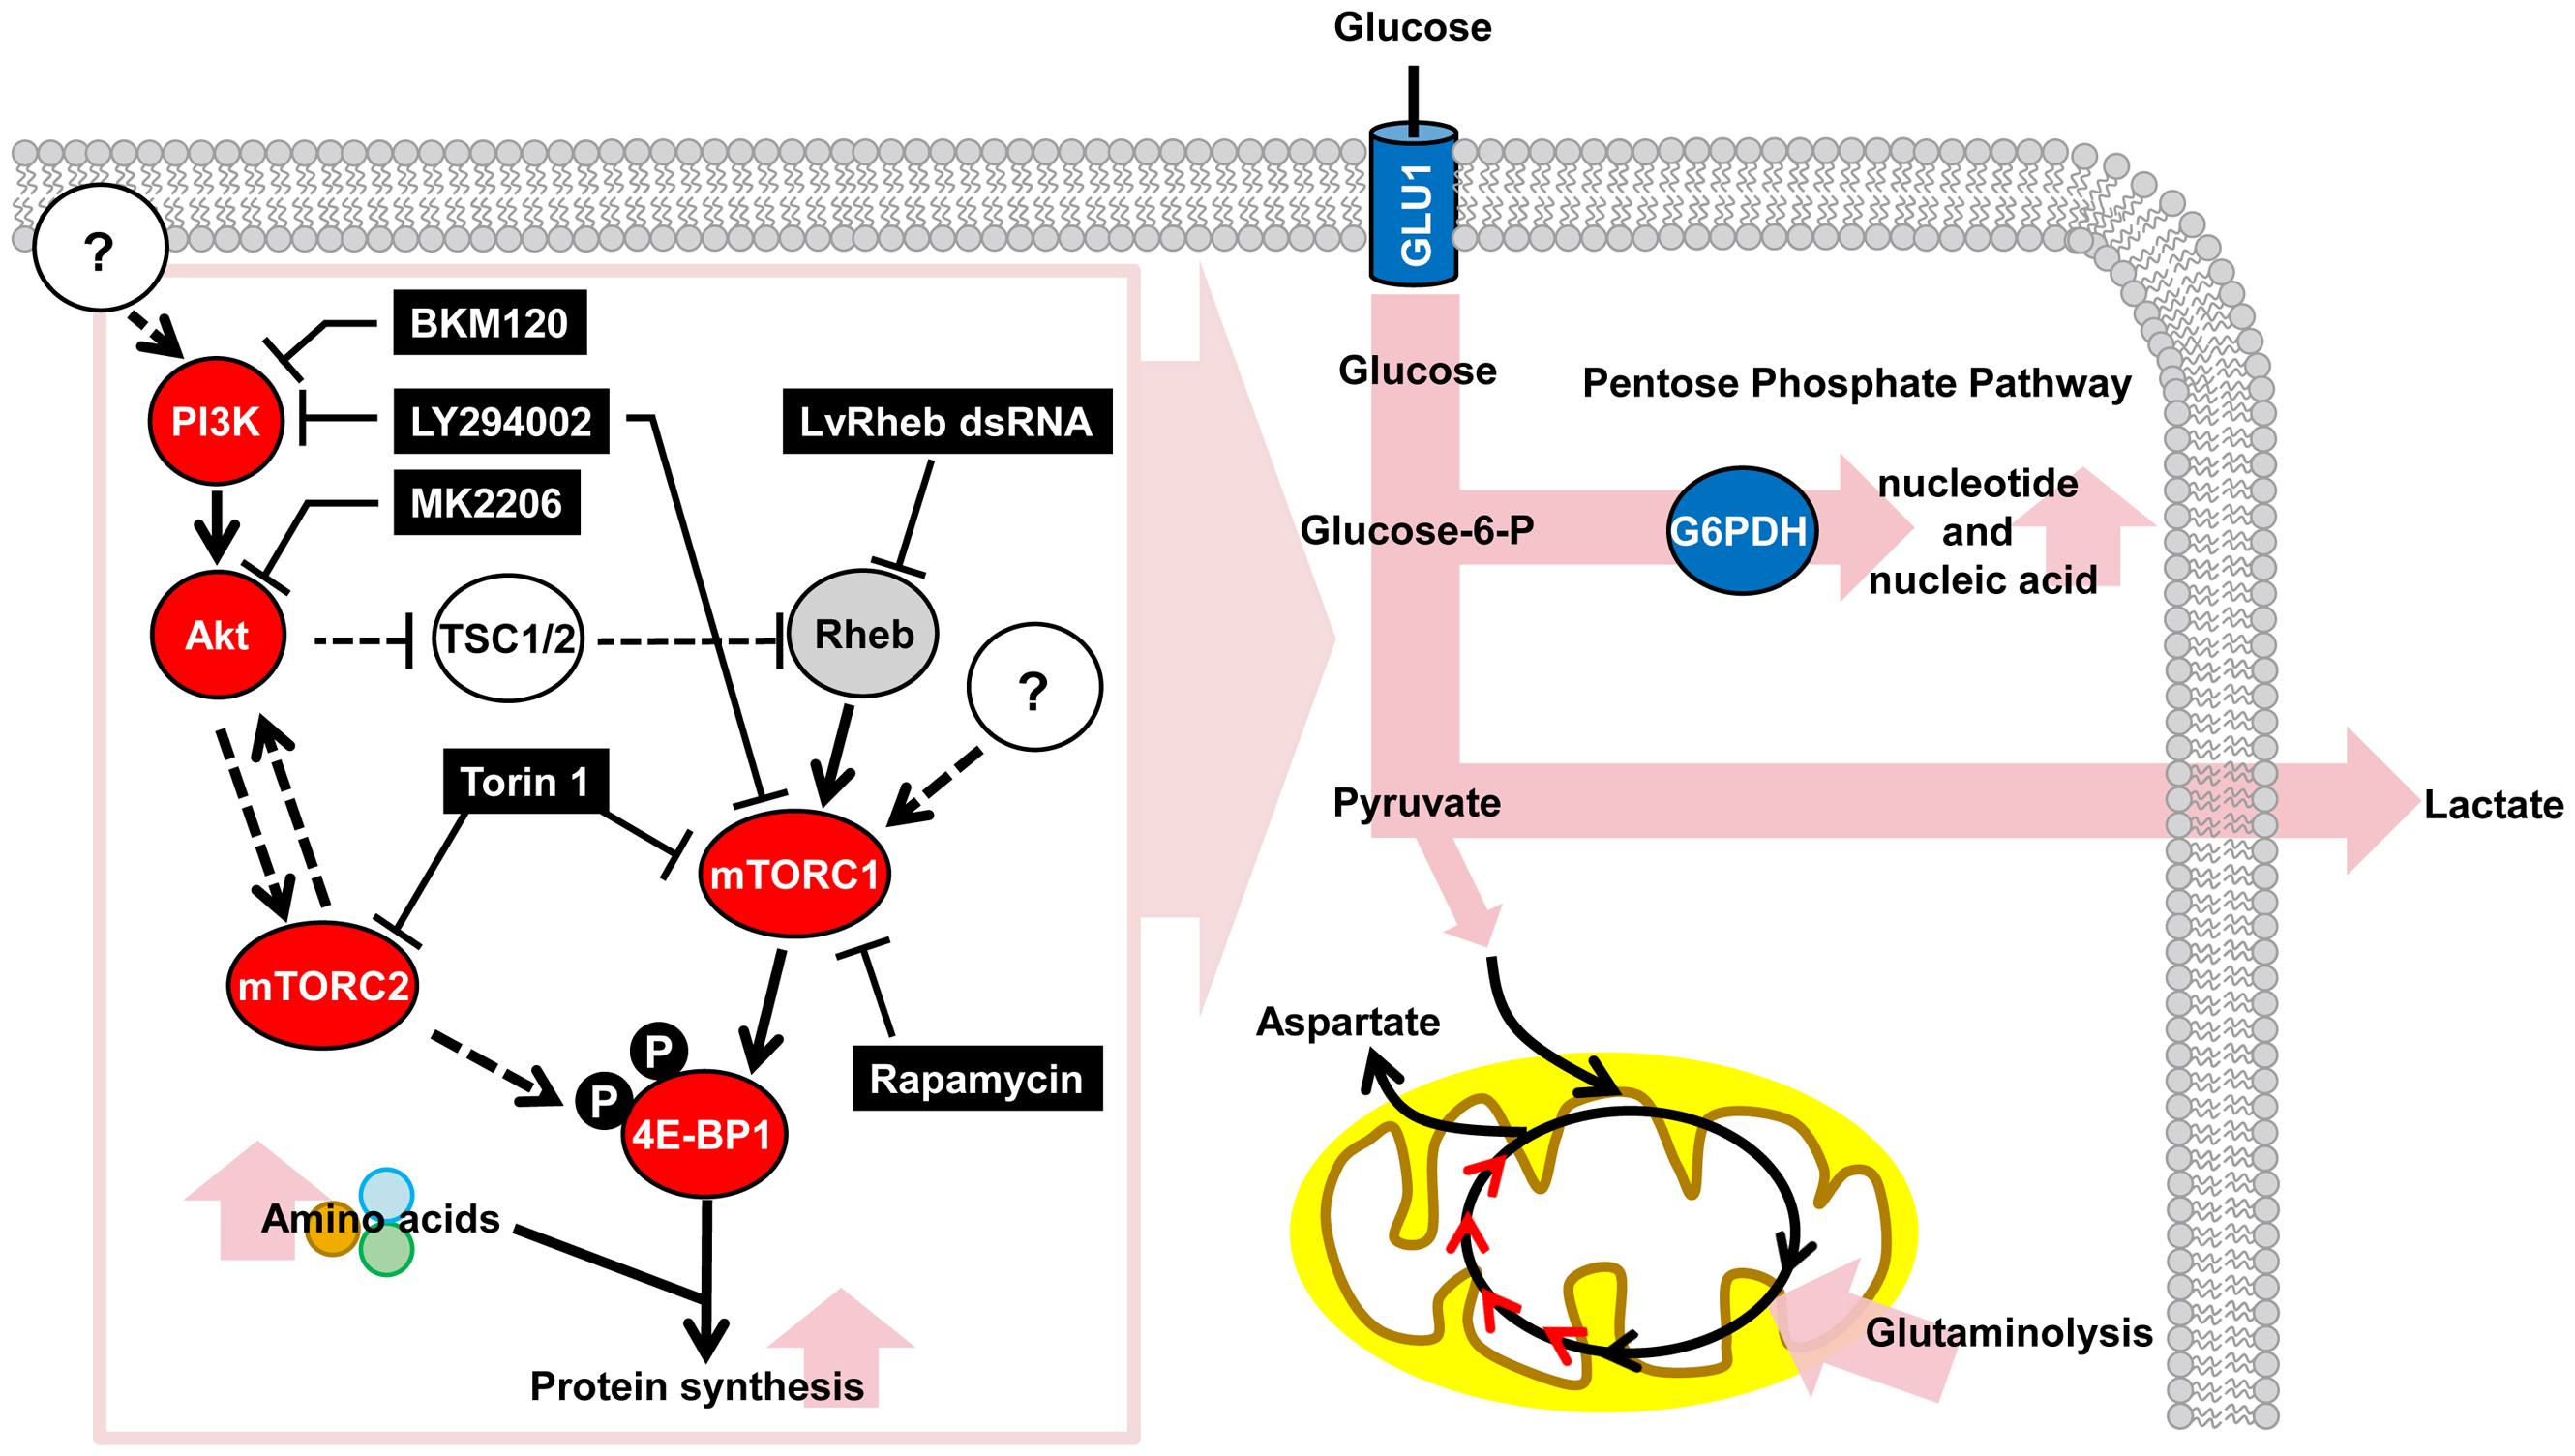 Schematic representation of the WSSV-induced Warburg effect and the involvement of the PI3K-Akt-mTOR pathway at the viral genome replication stage (12 hpi) of the first WSSV replication cycle.